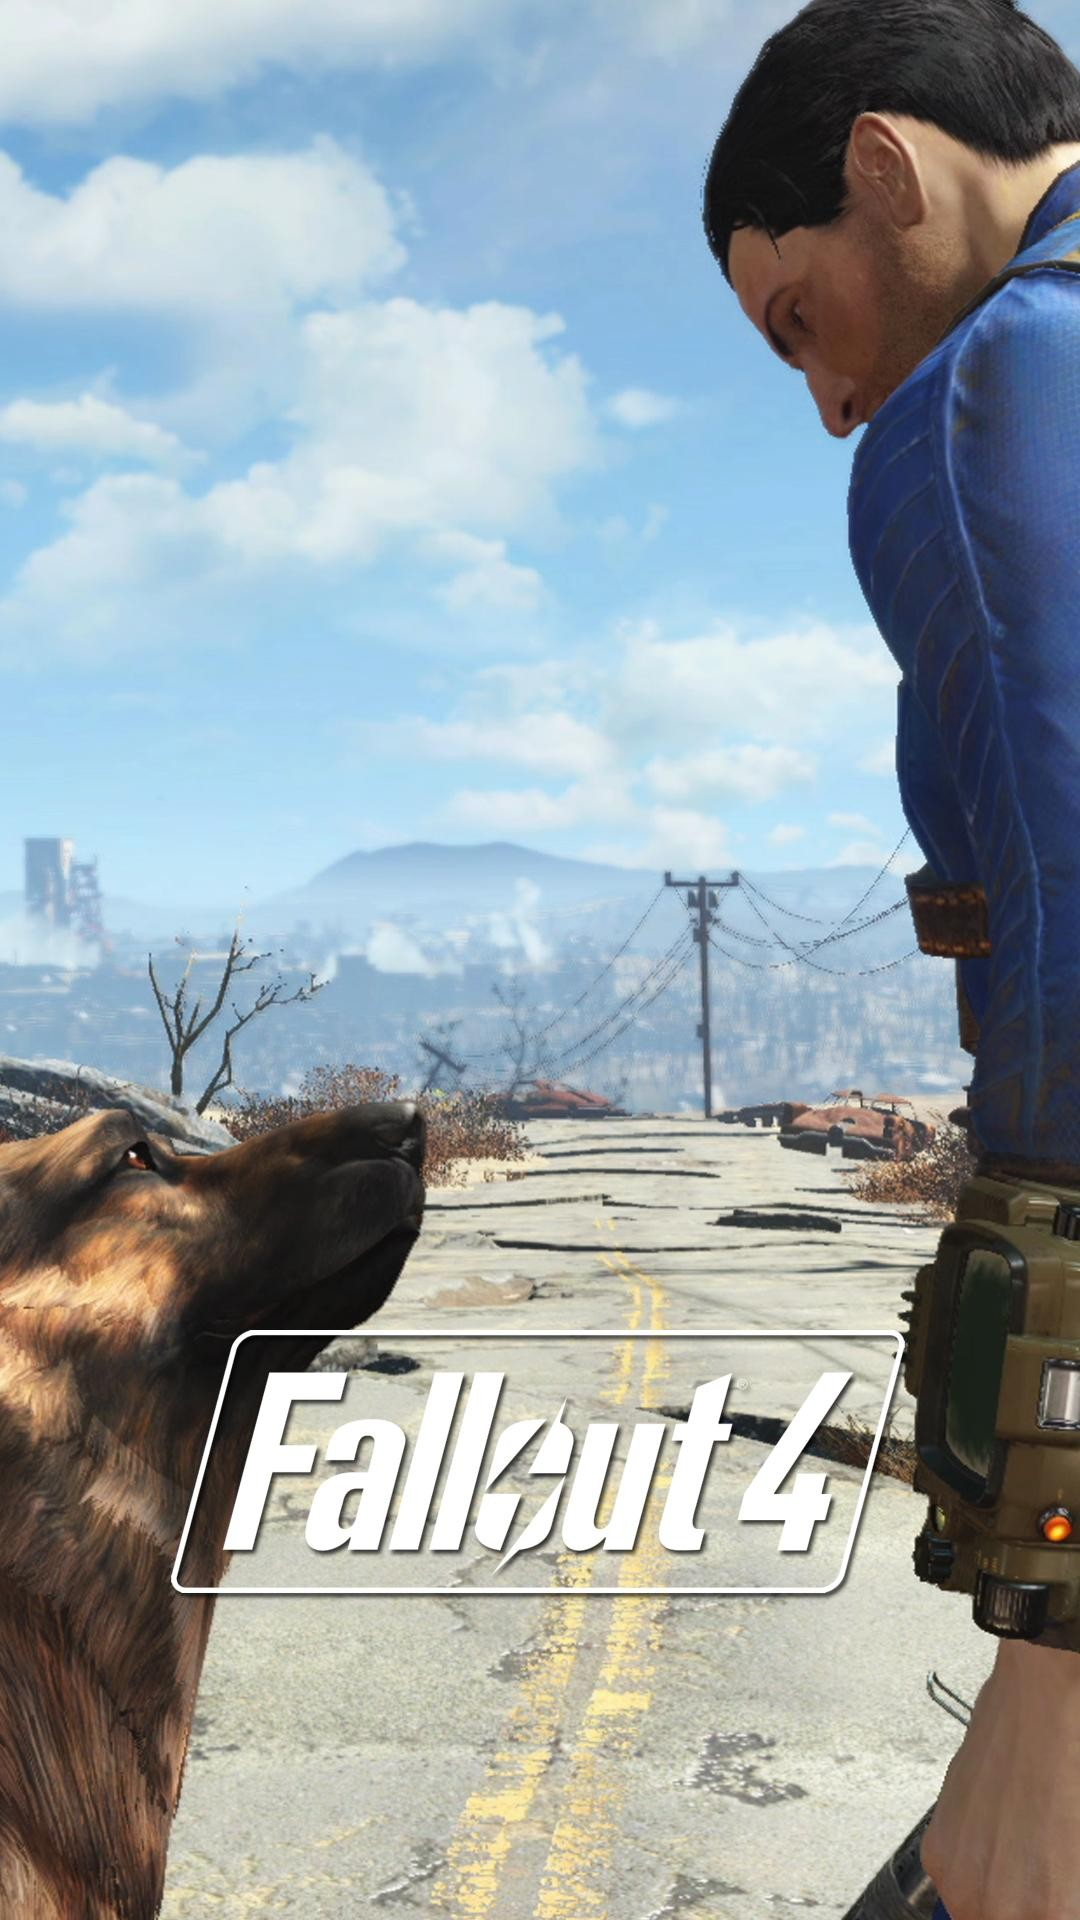 Fallout 4 Phone Wallpaper 183 ① Download Free High Resolution